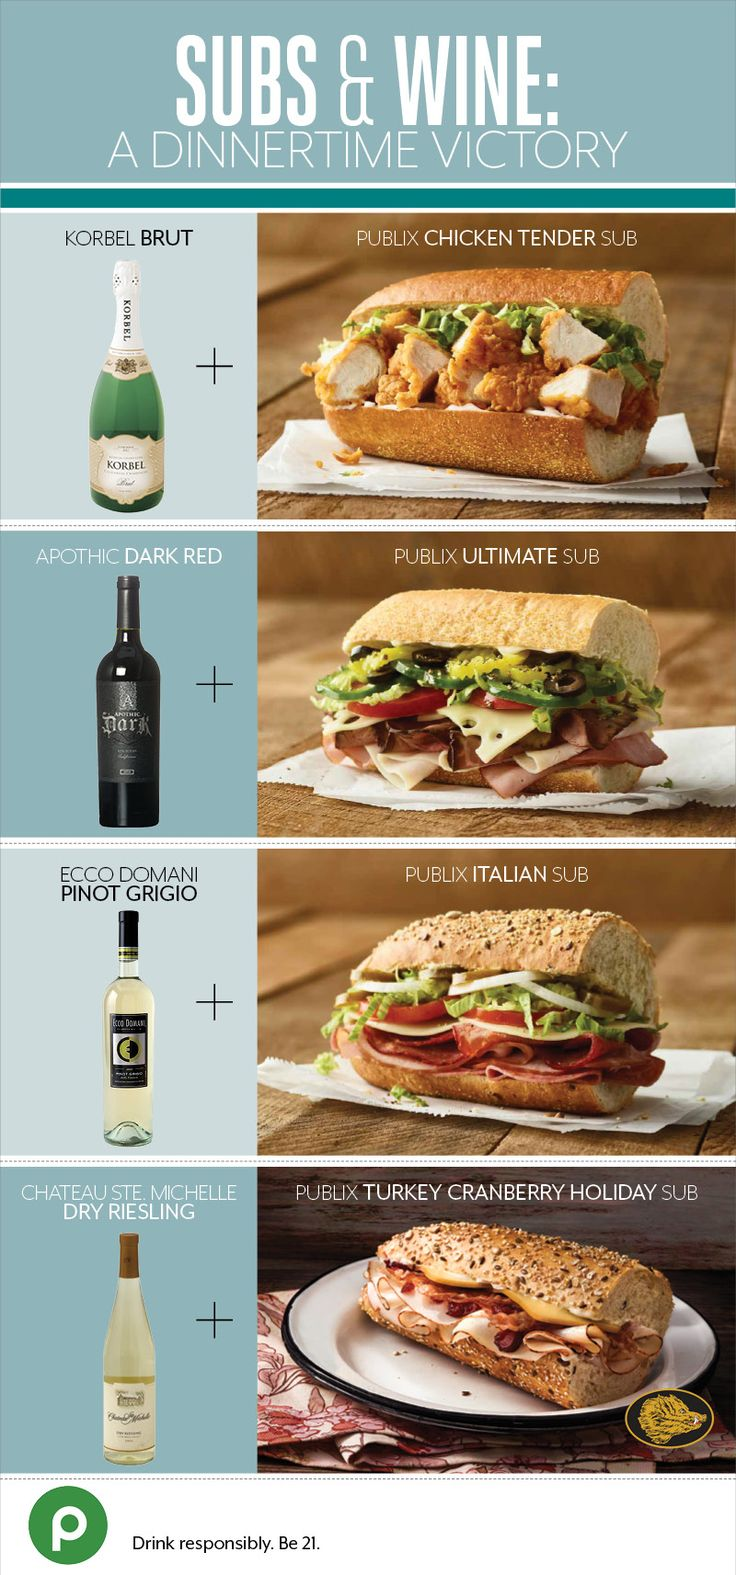 Whether for dinner tonight, or a game day gathering, grab some Publix Deli subs and hand-picked wines for a casually delicious and crowd-pleasing meal. Try sparkling wine with the Publix Chicken Tender Sub, or refreshing pinot grigio with the hearty Publix Italian Sub. No matter your choice, you're sure to be dinner's most valuable player.